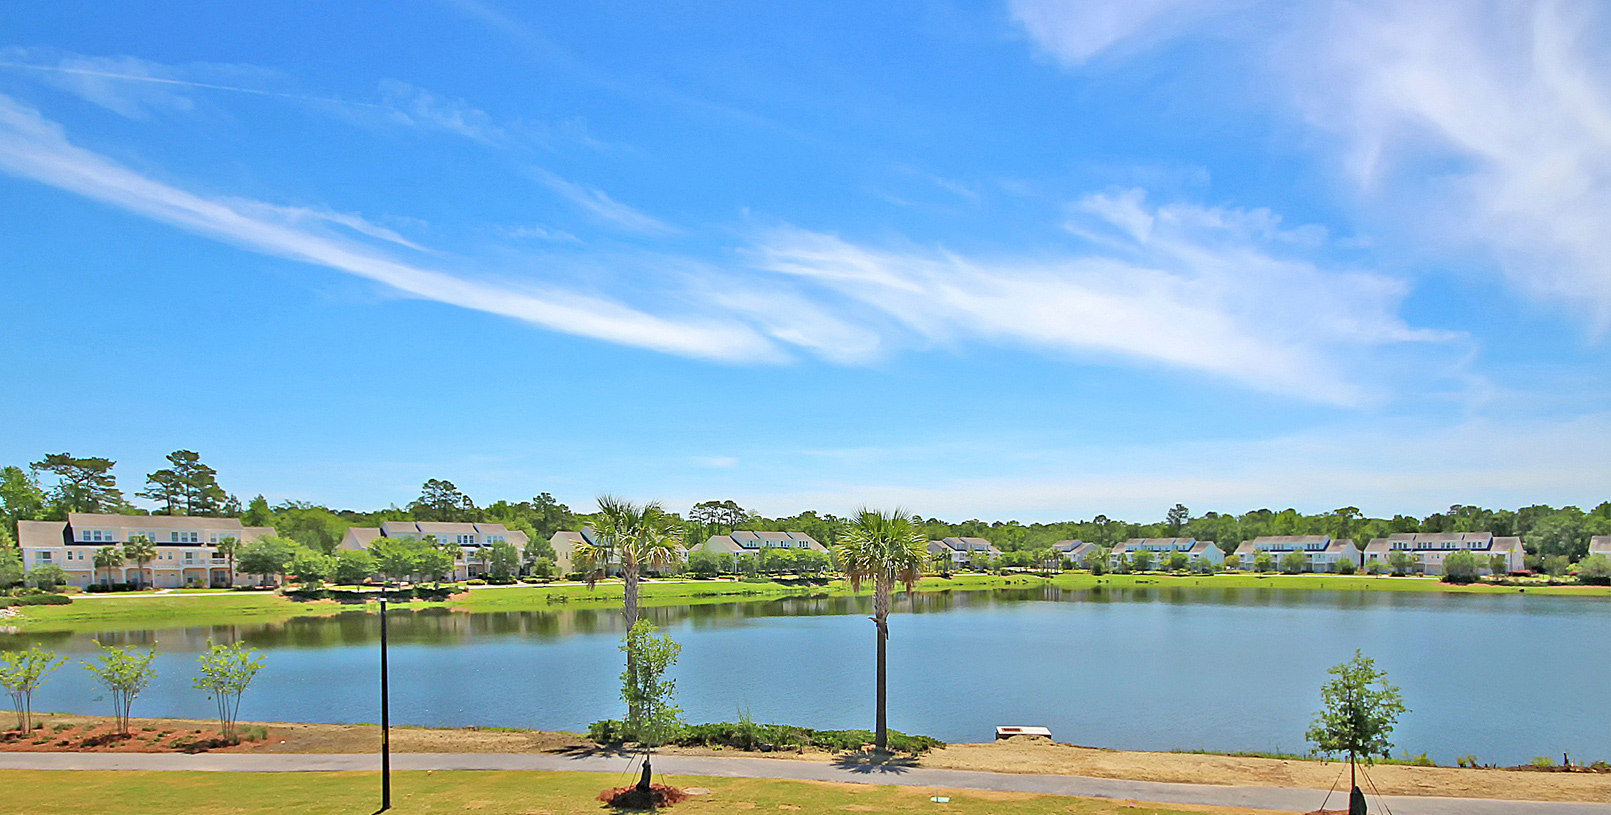 Johnston Pointe community lake with walking paths